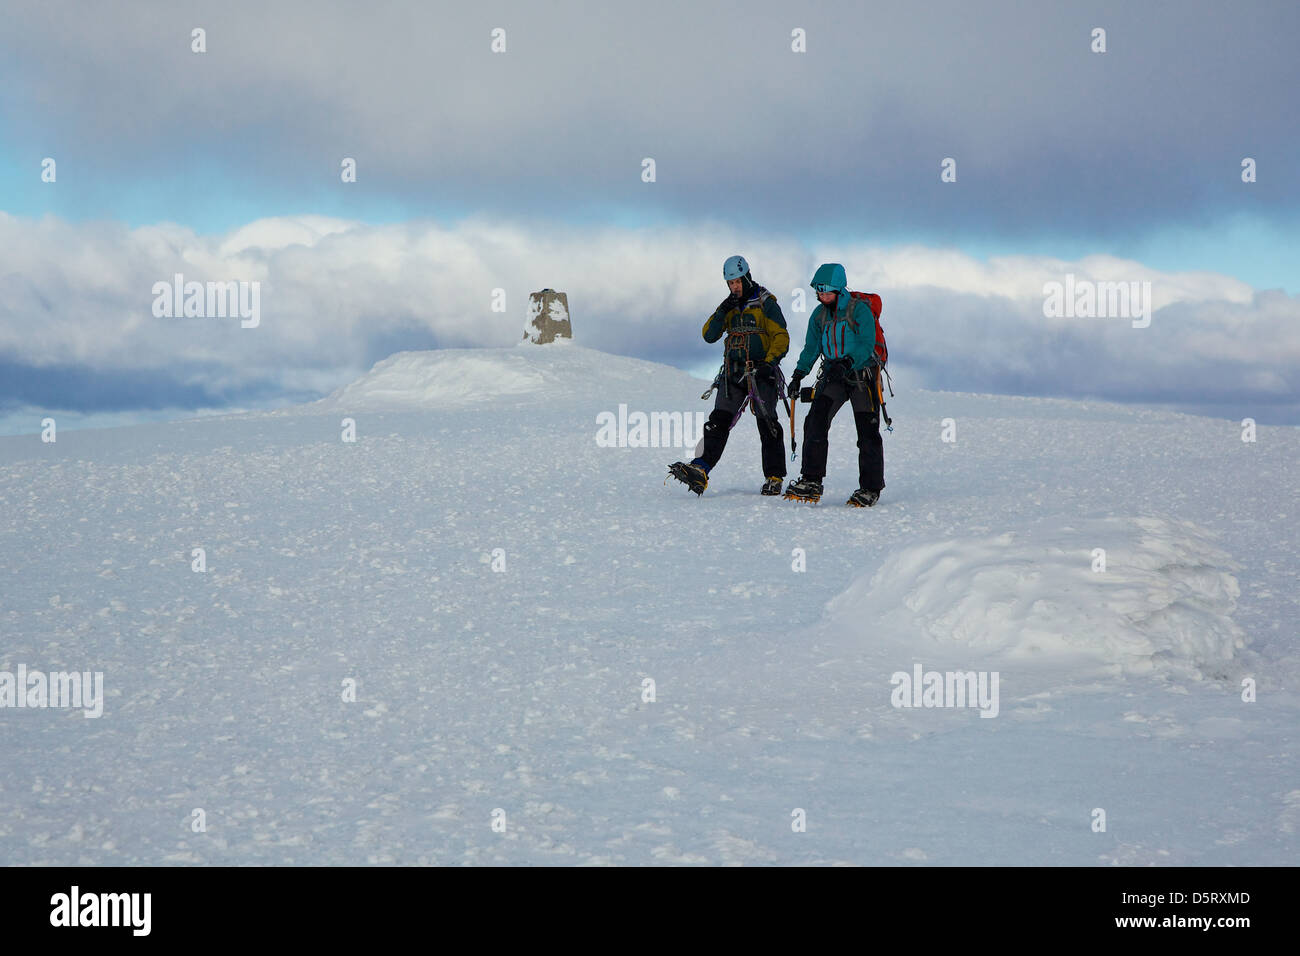 Two climbers with ice axes on the summit of Ben Nevis in snow conditions - Stock Image